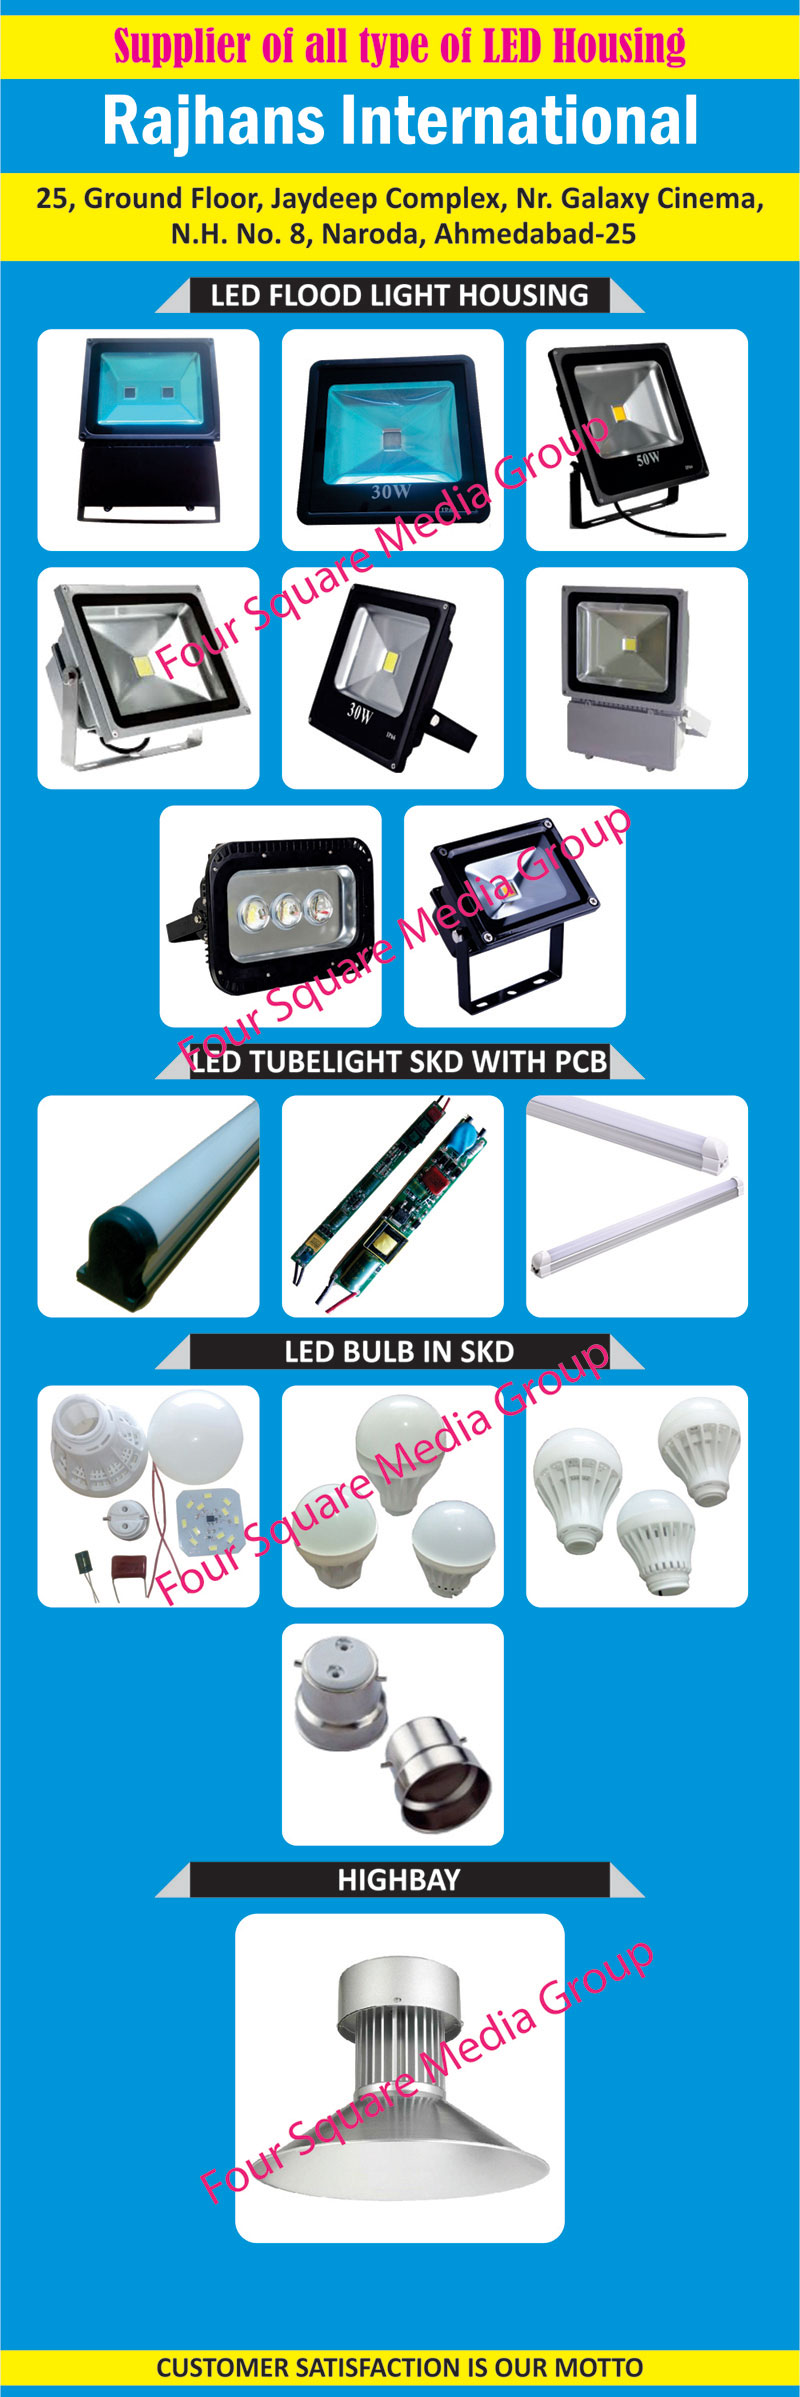 Led Light Accessories, Led Drivers, Street Light Fixture, MCPCB, Led Down lights, White Acrylic Tube, Philips Led Heat Sink, Philips Led Disk, Philips DLM, Philips Led Disk DLM, Philips DLM Fixtures, Led Housing, Led Flood Light Housing, Led Tube Light SKD With Printed Circuit Boards, Led Bulb in SKD, High Bay Lights